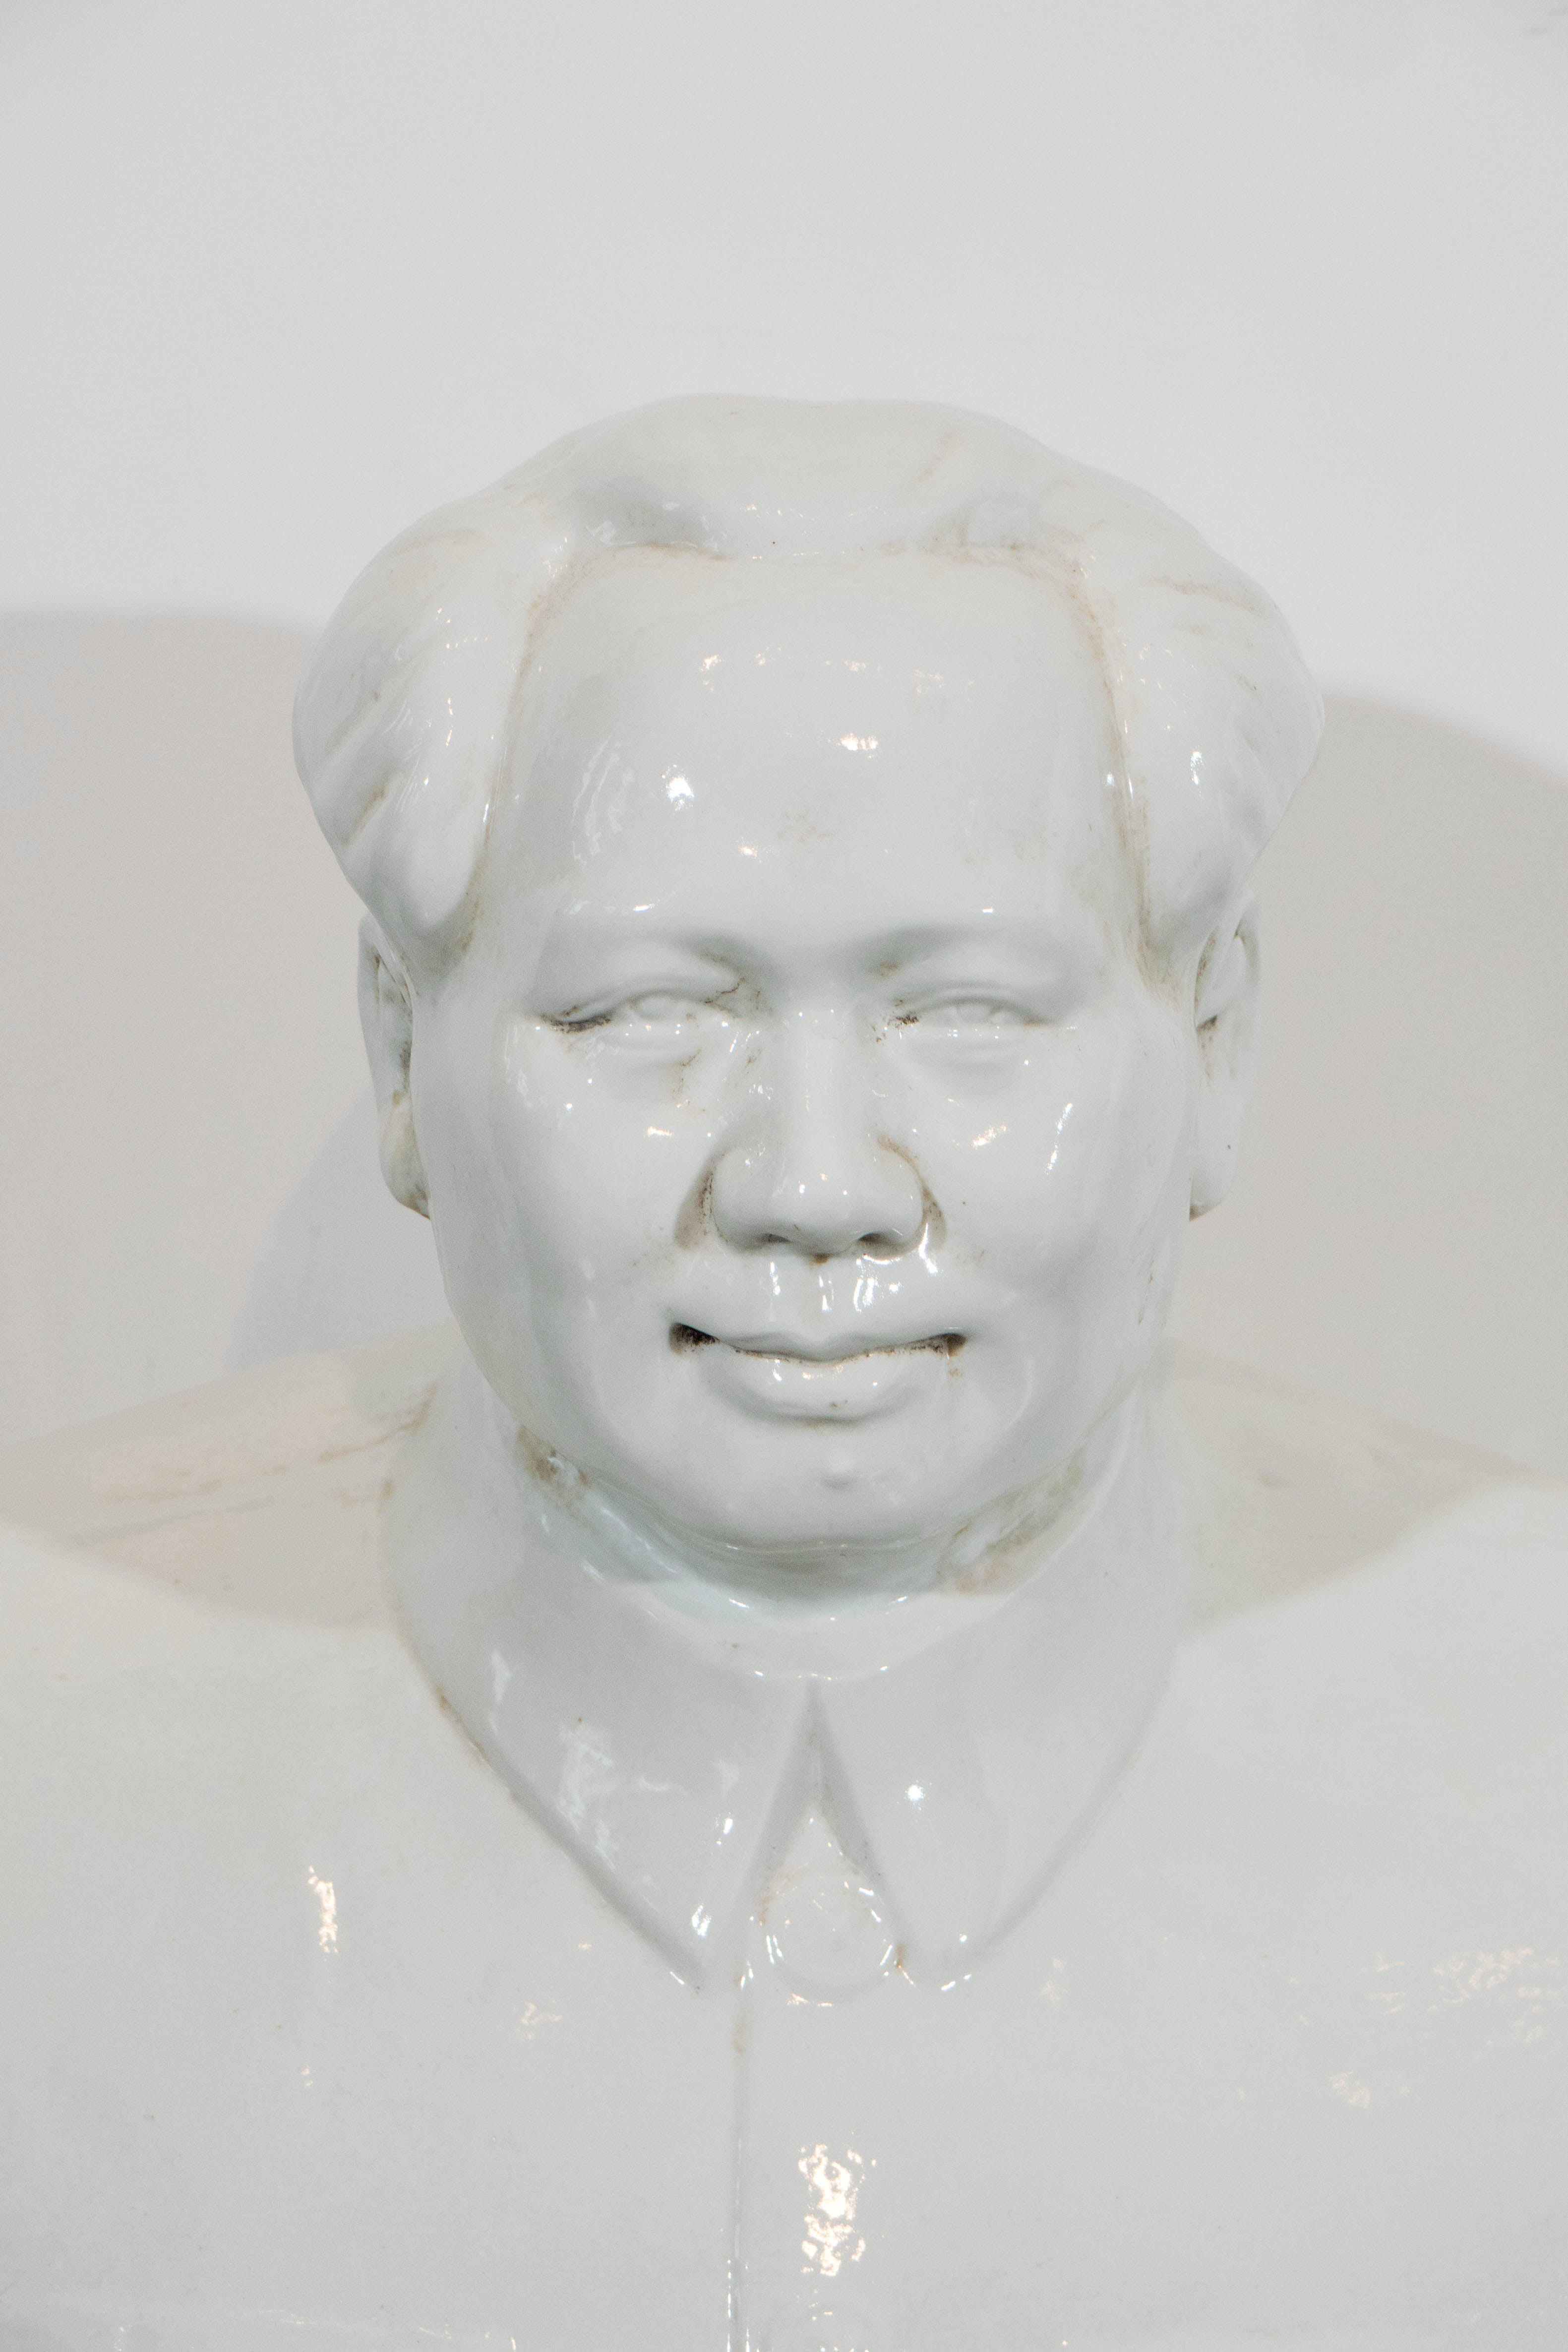 Large Cultural Revolution Period Mao Bust For Sale at 1stdibs